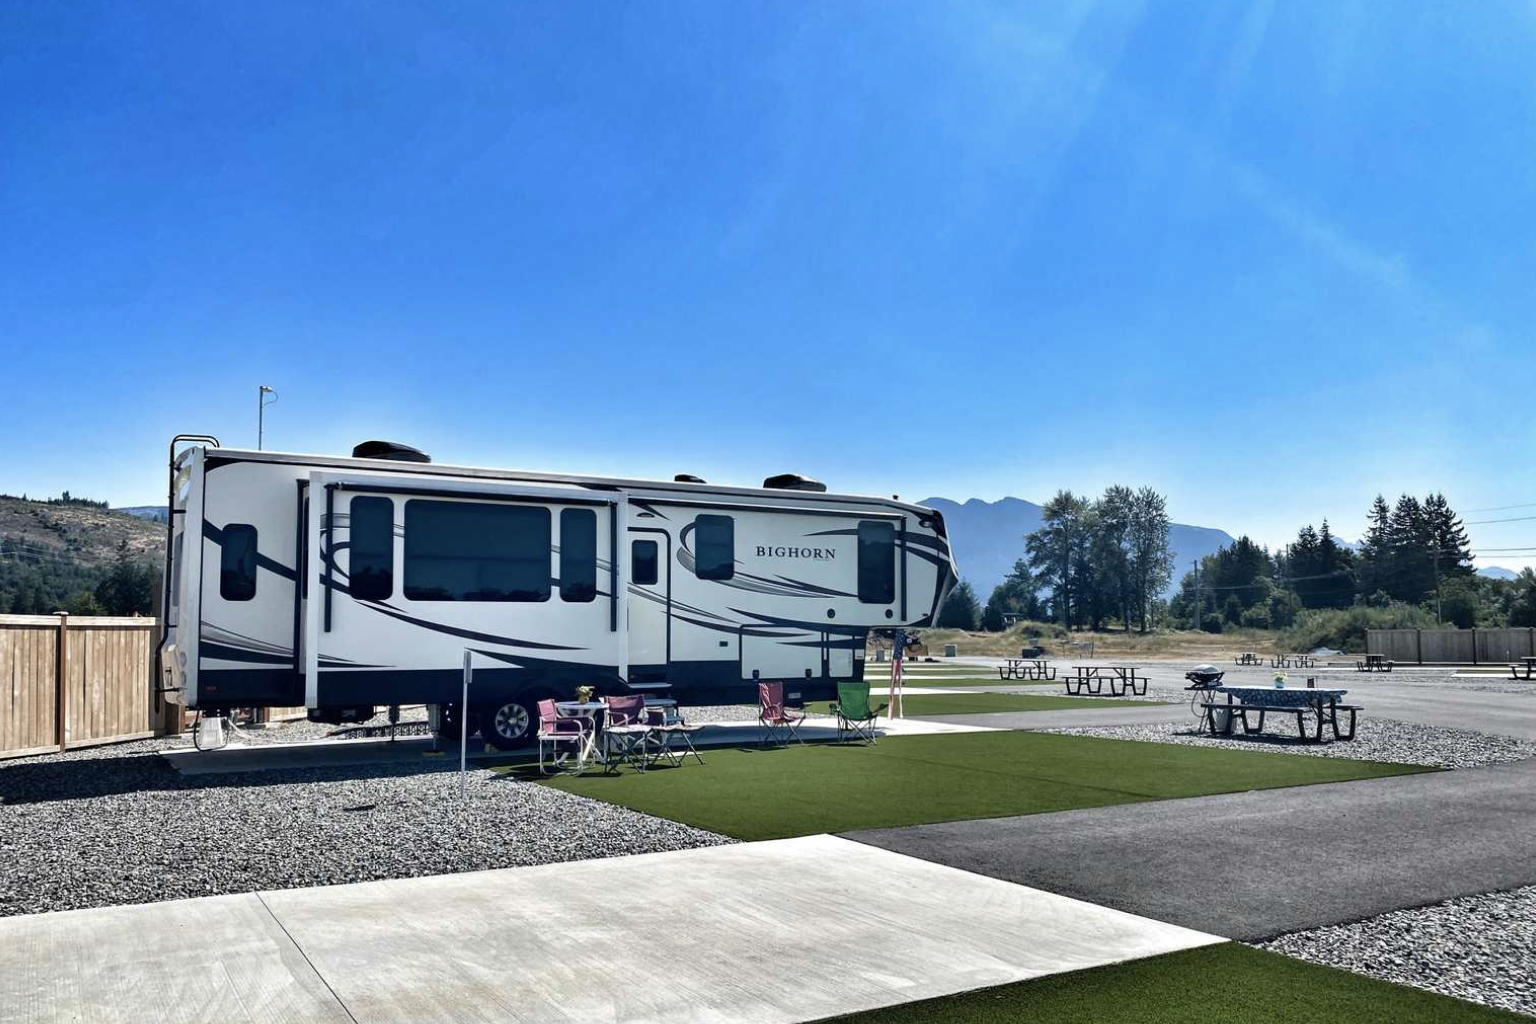 RV parked at campground with chairs and picnic table with mountains in the background